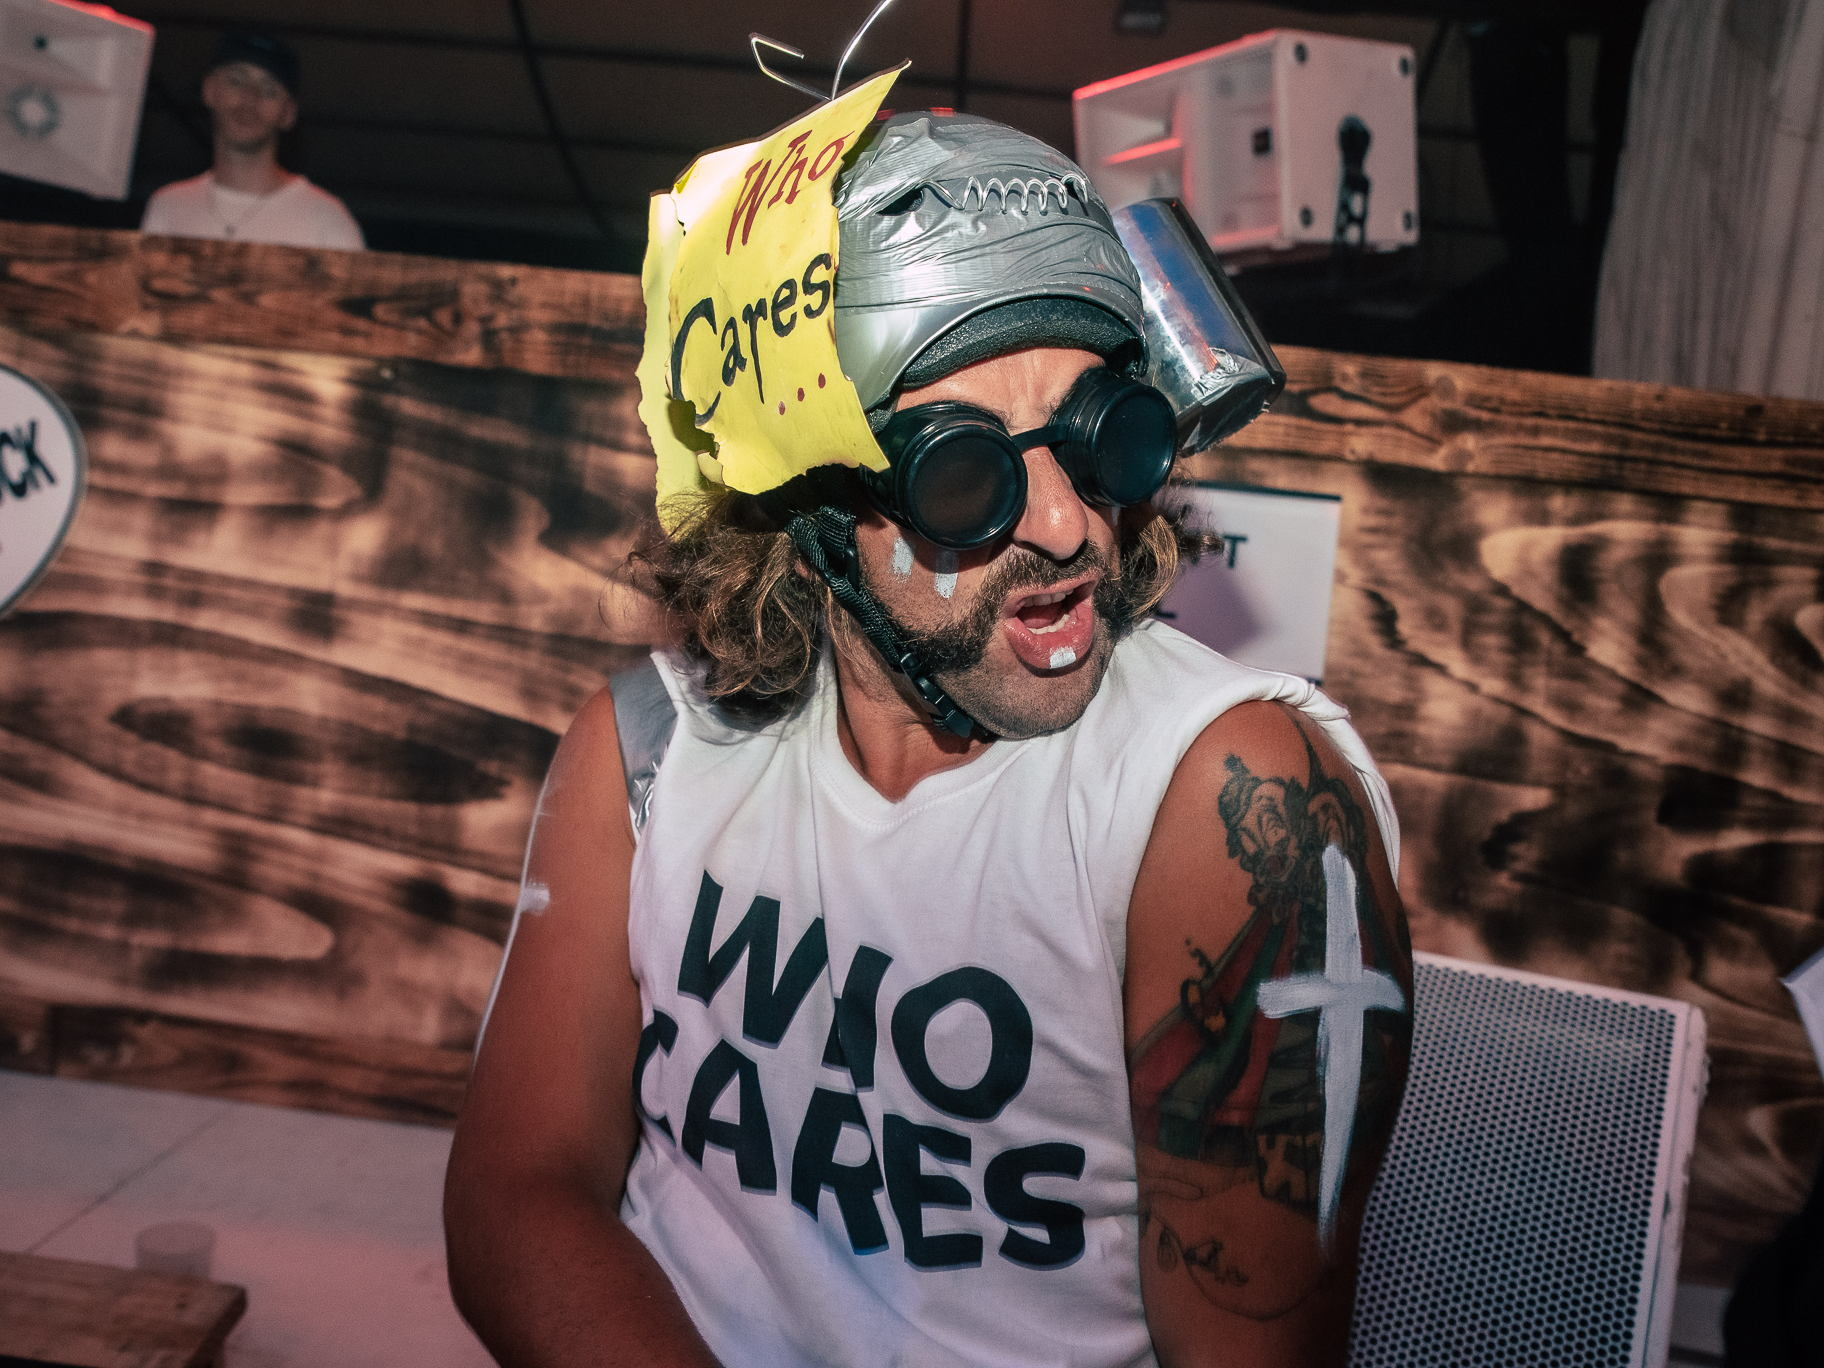 Who cares opening party, Ibiza party news